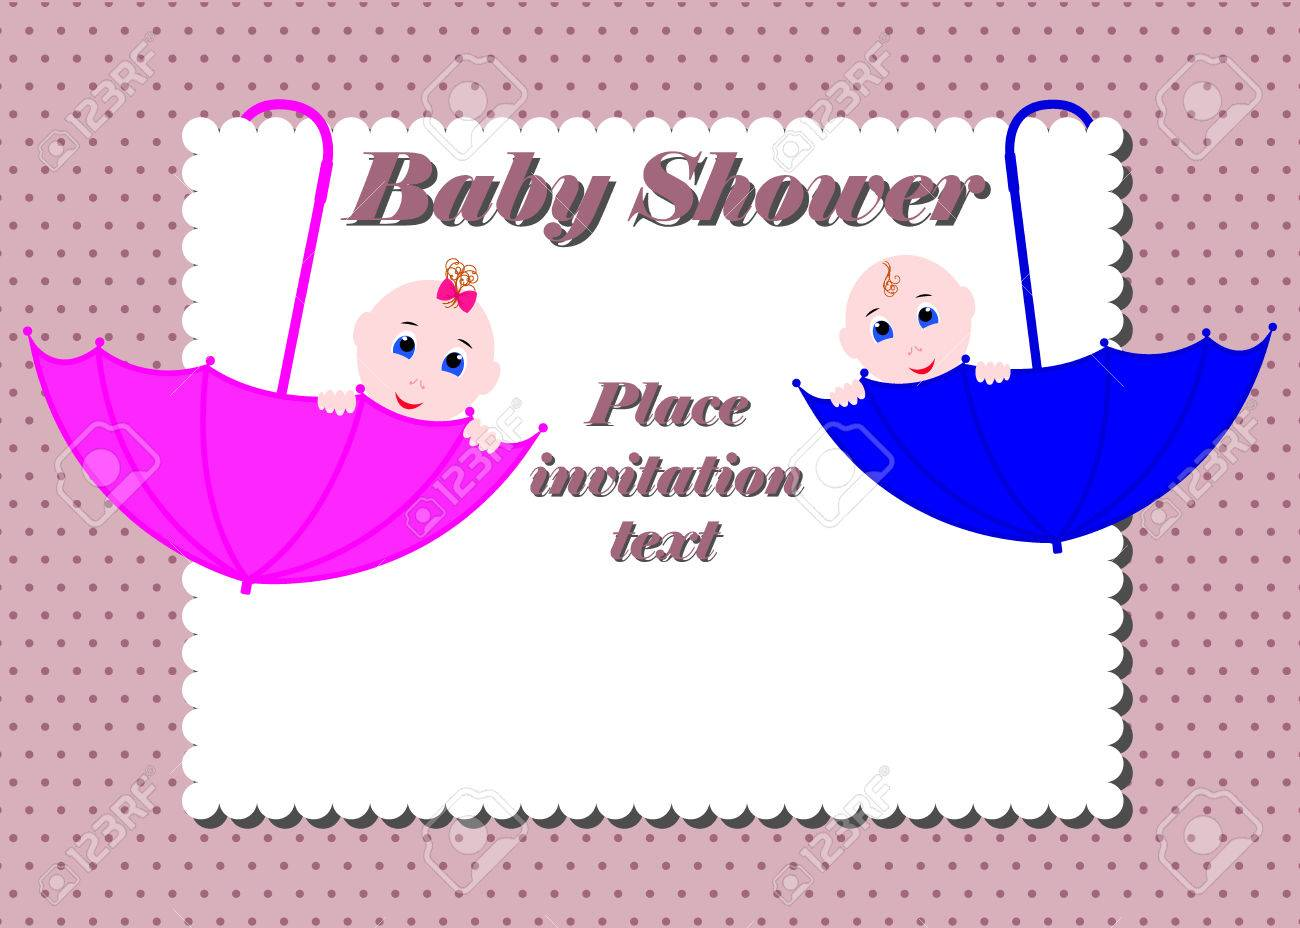 Baby Shower Invitation Card Cute Boy And Girl Sitting In Umbrella